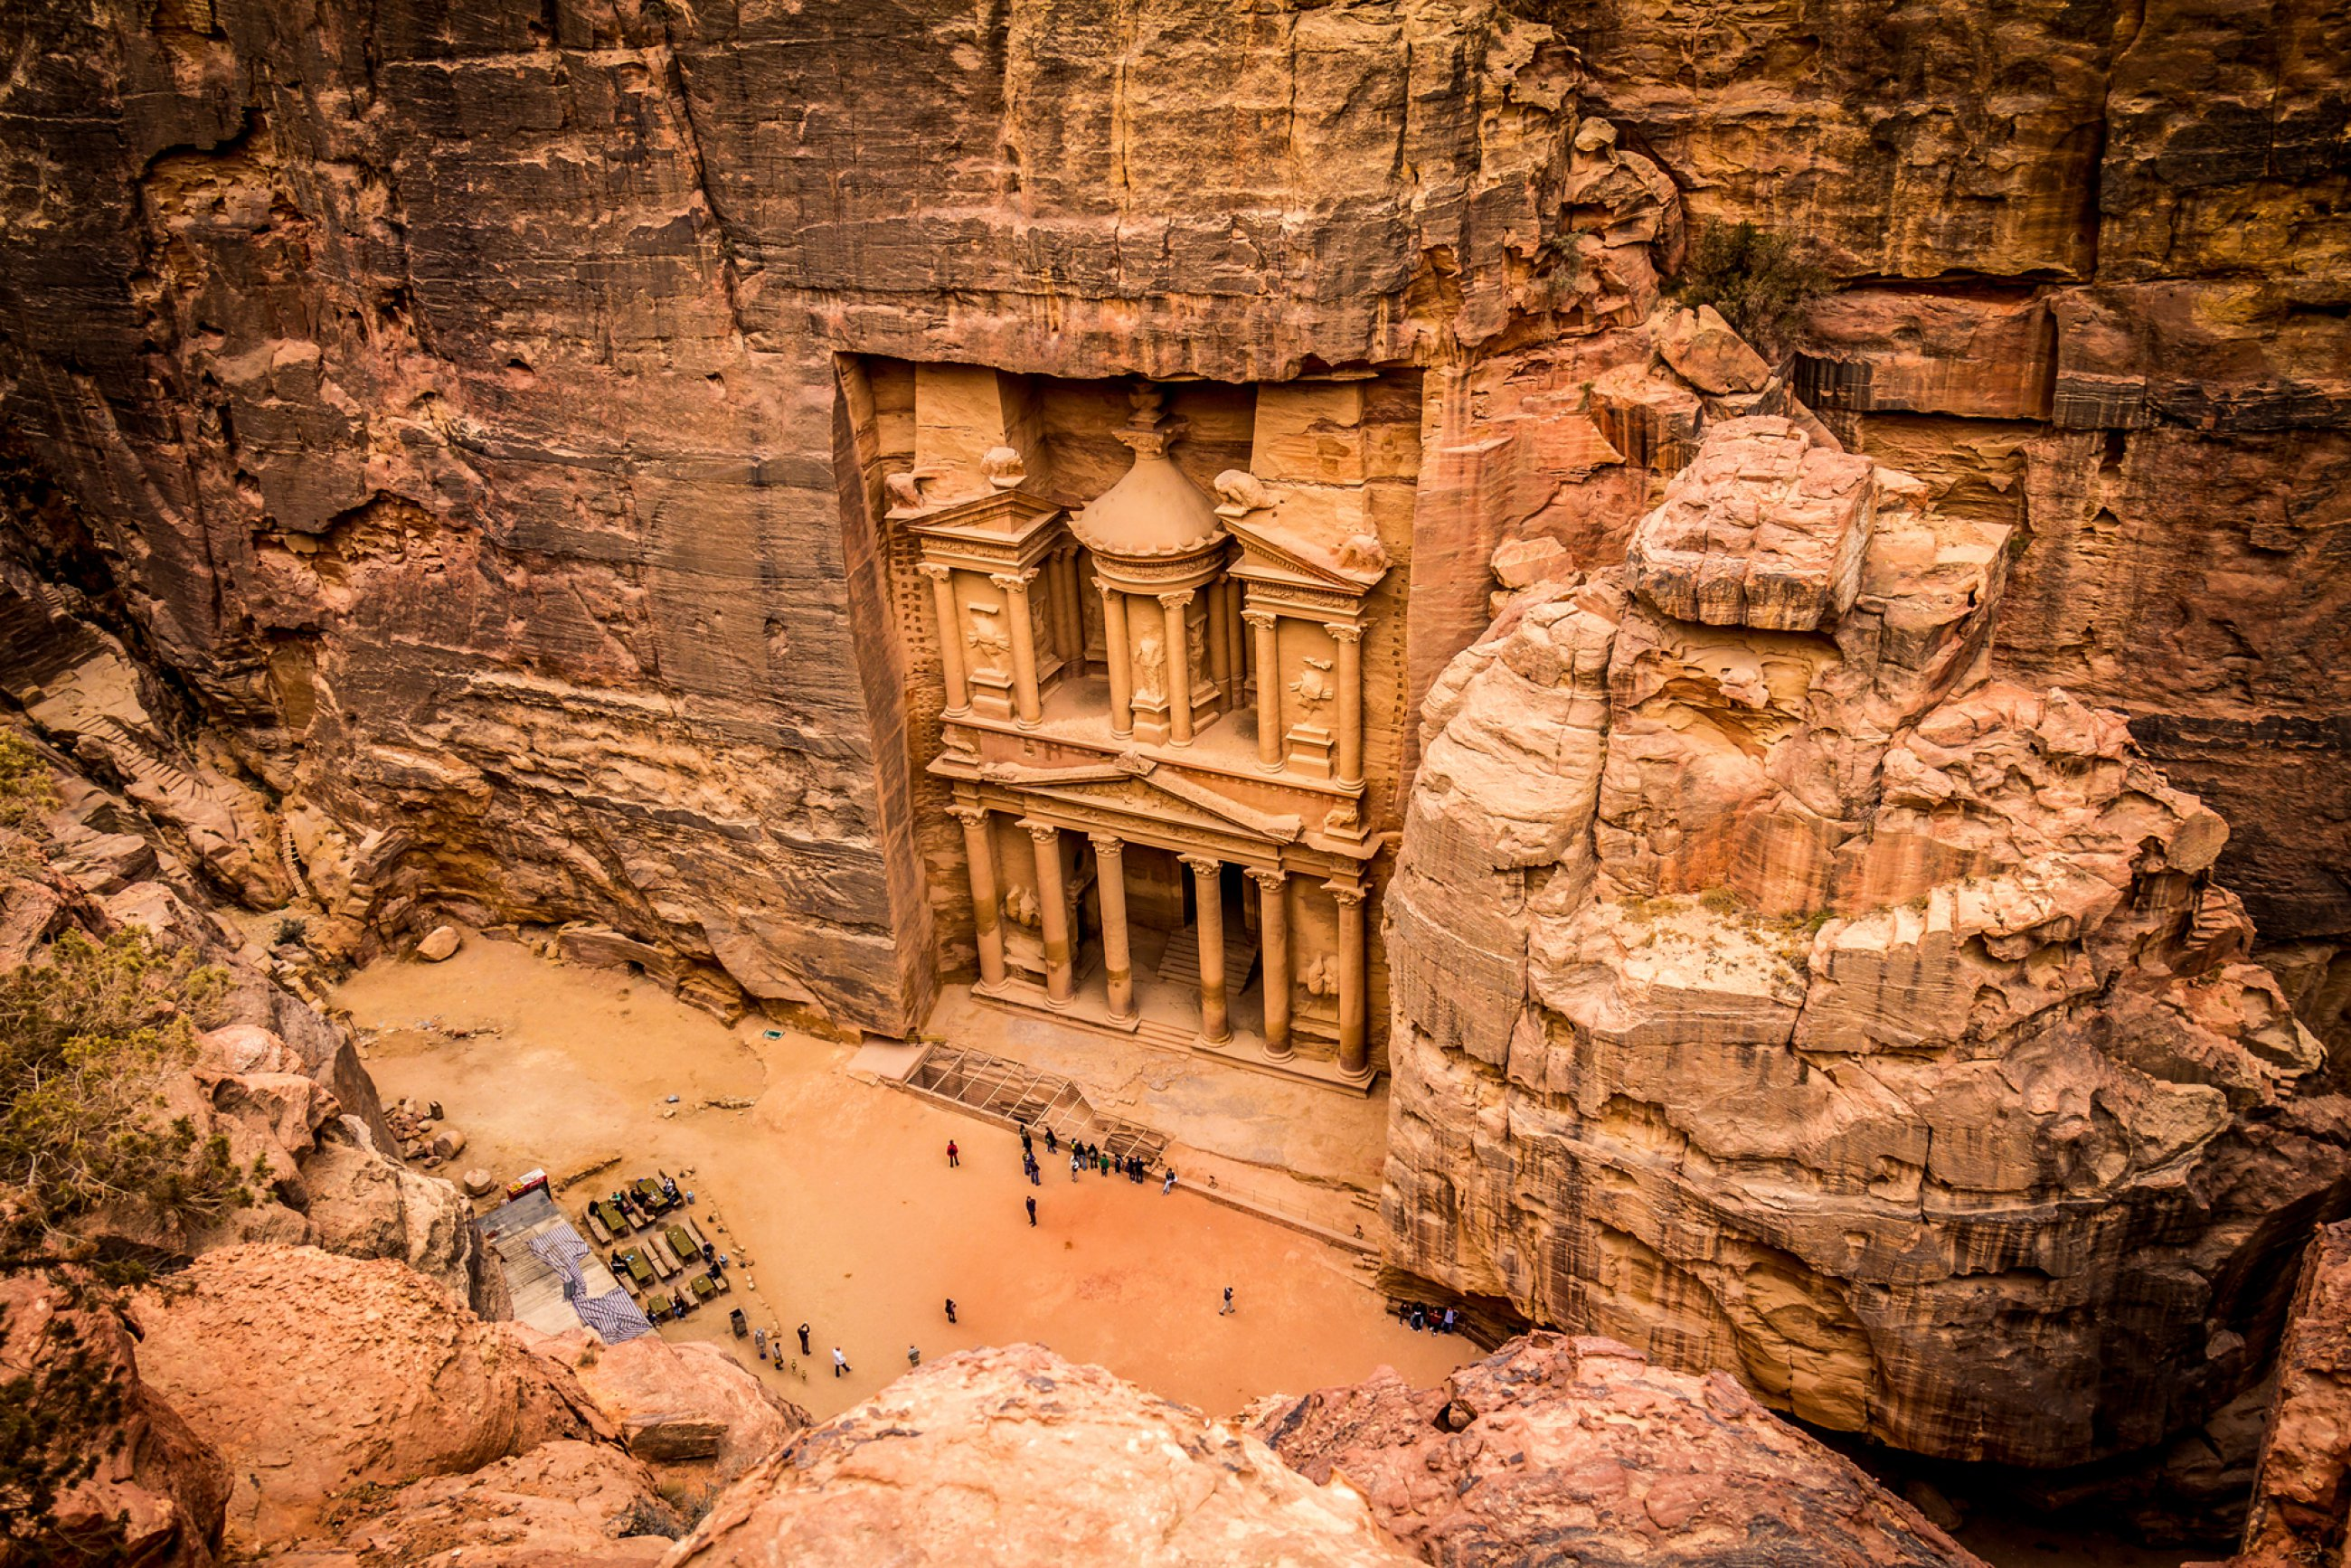 https://bubo.sk/uploads/galleries/4933/jordansko-petra.jpg